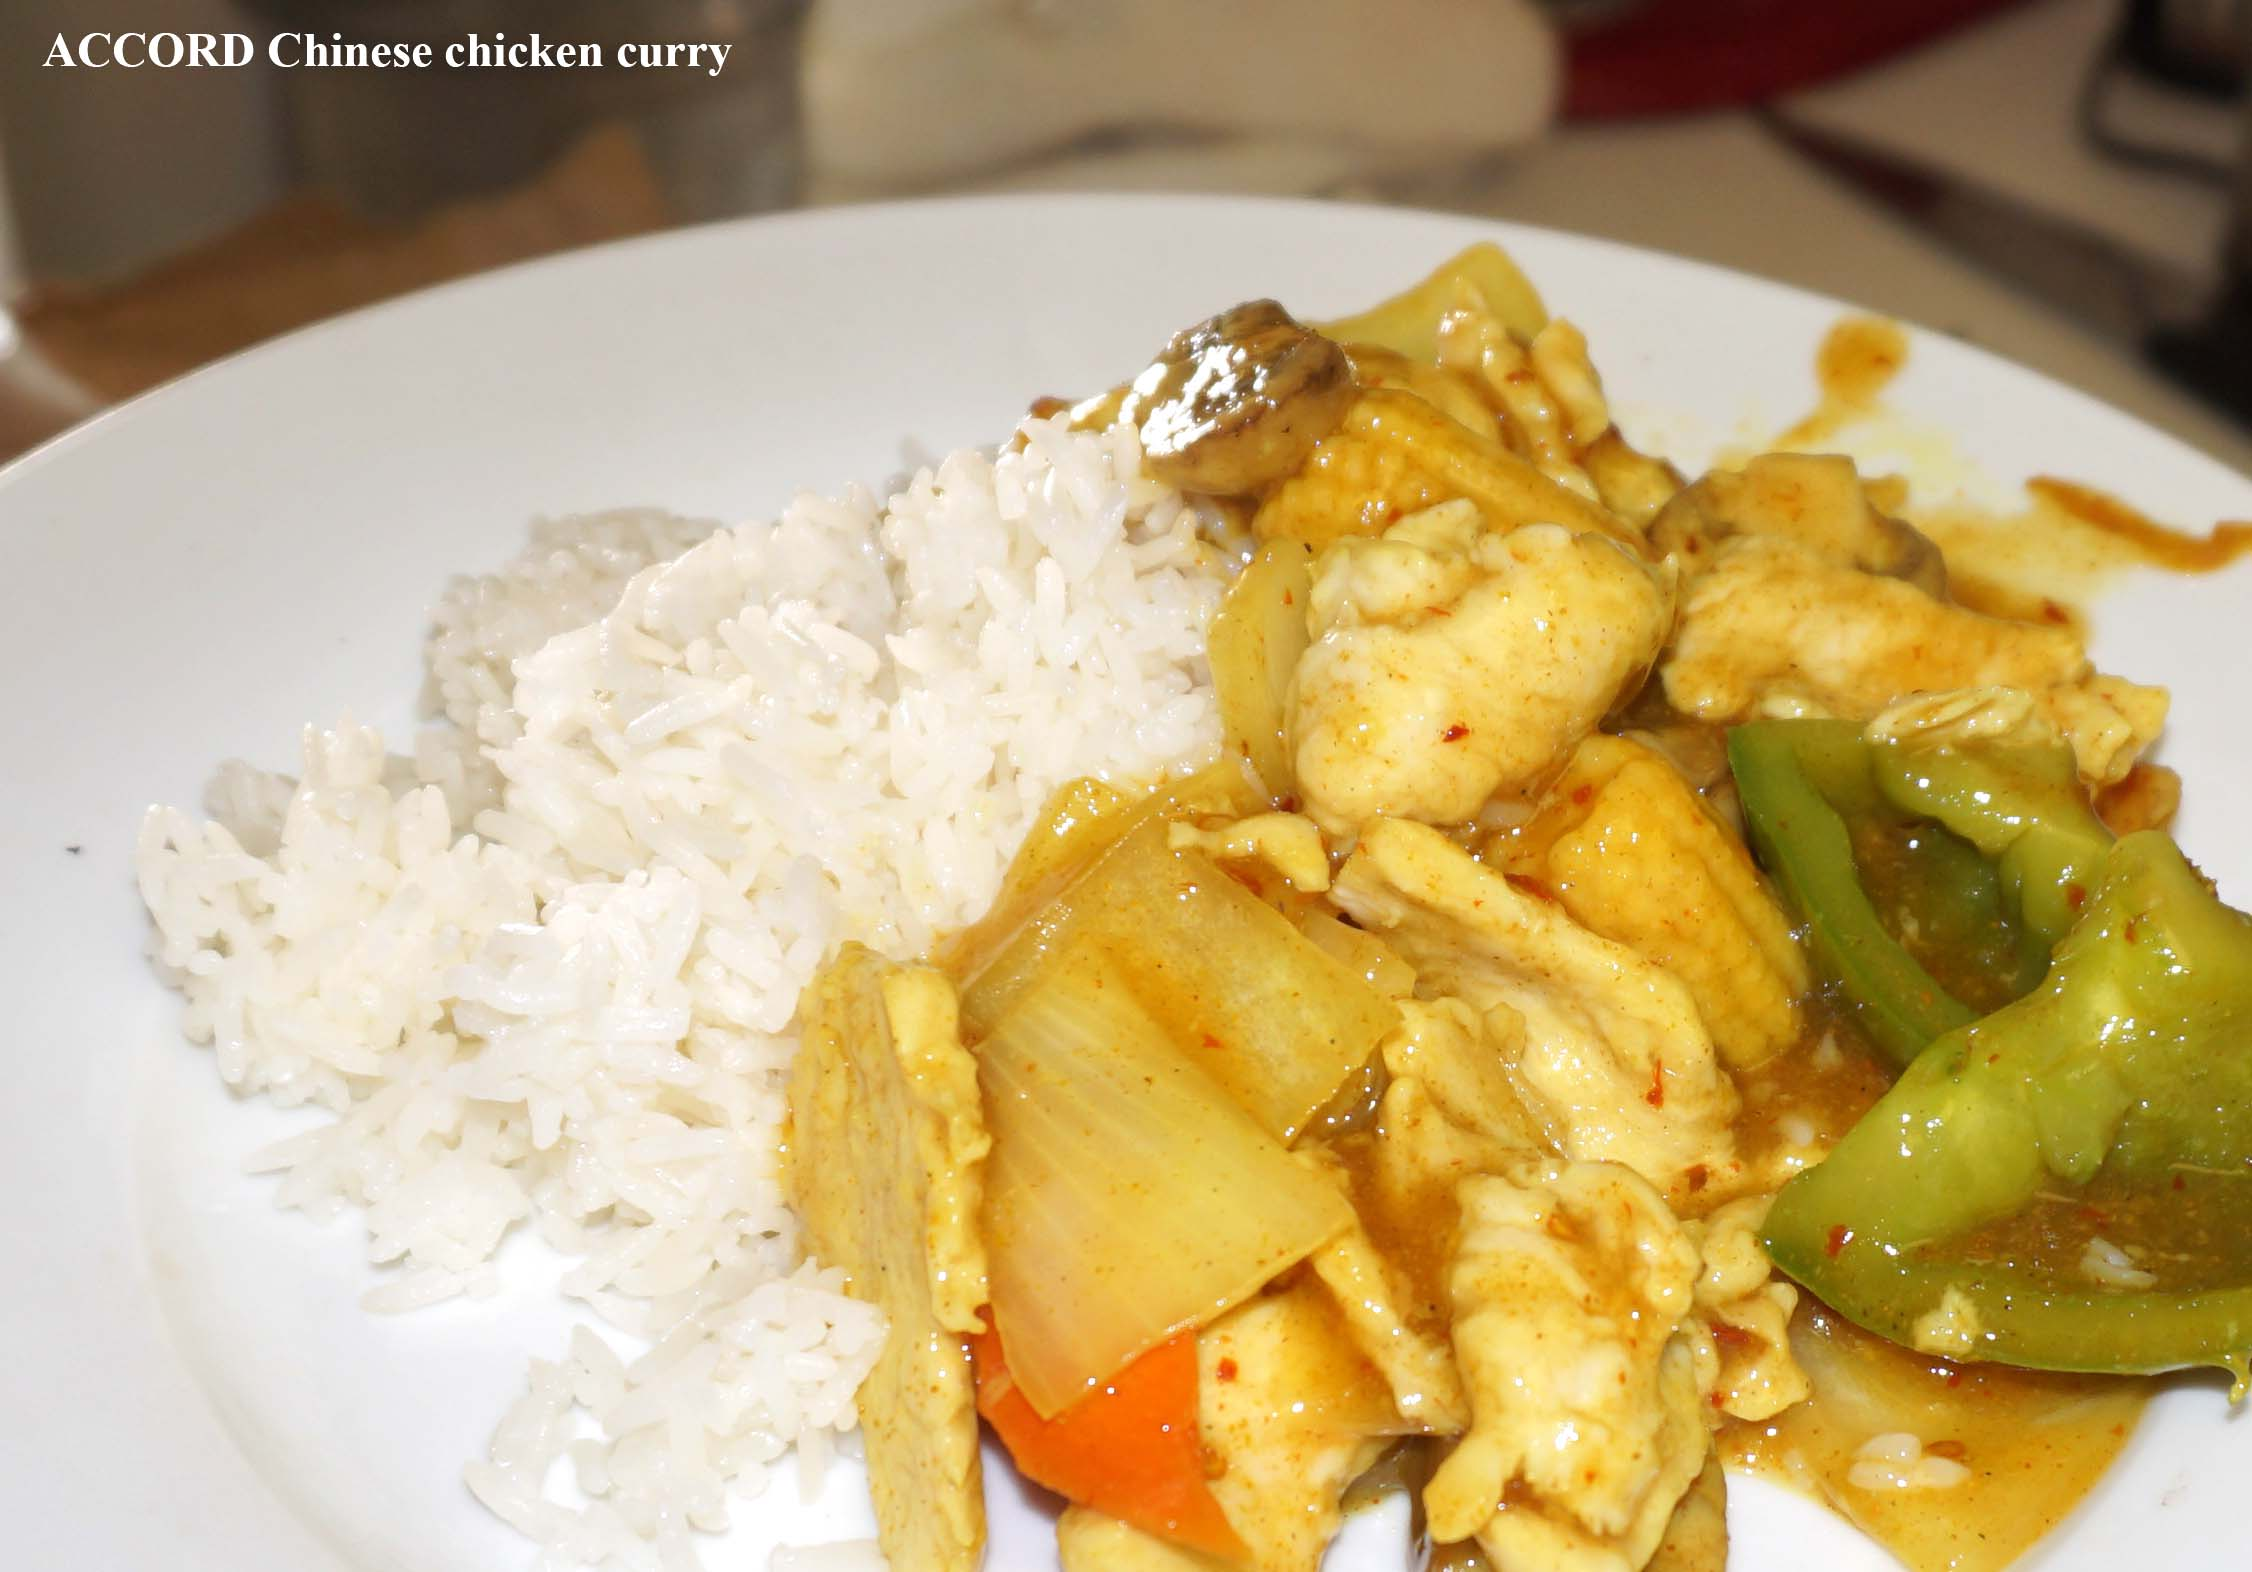 ACCORD Chinese chicken curry